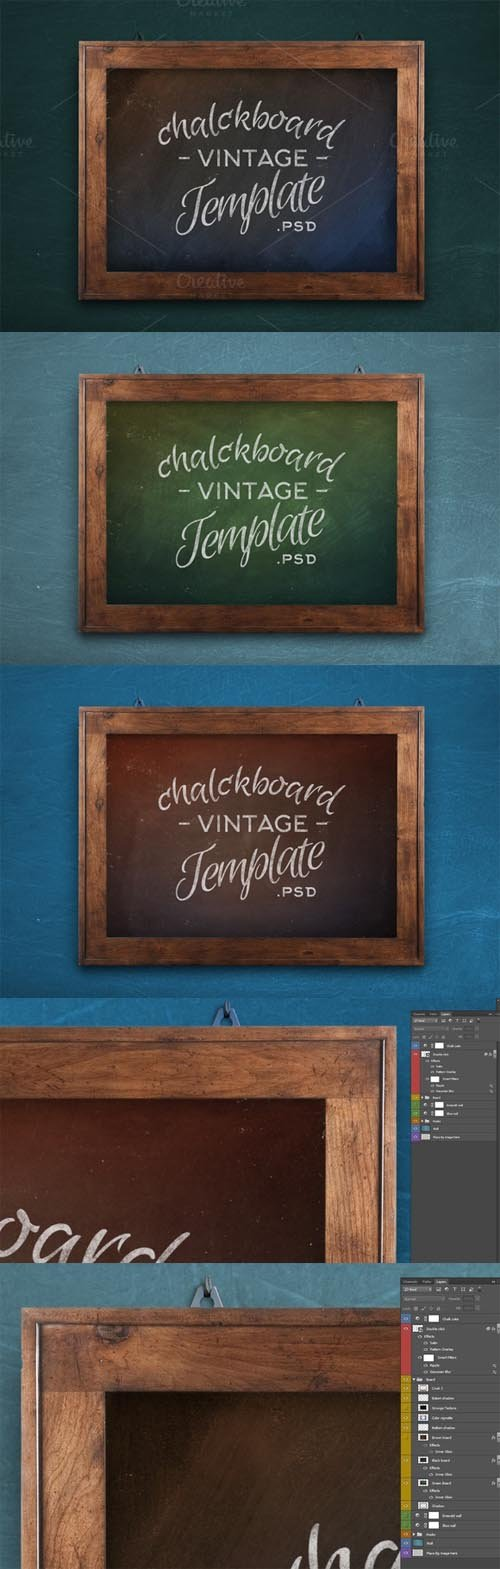 PSD - Chalkboard Vintage Mock-Up Template